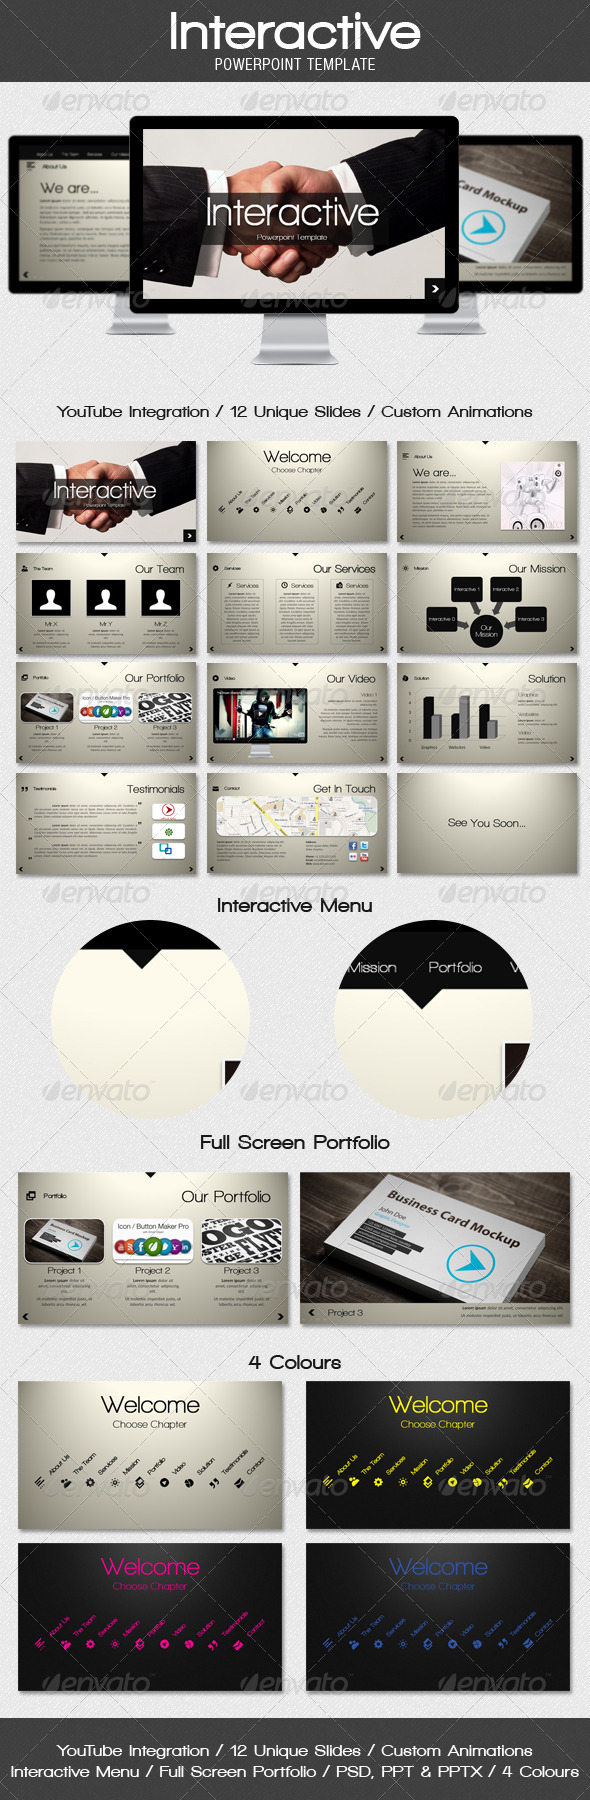 Interactive powerpoint template power point examples pinterest interactive powerpoint template toneelgroepblik Gallery